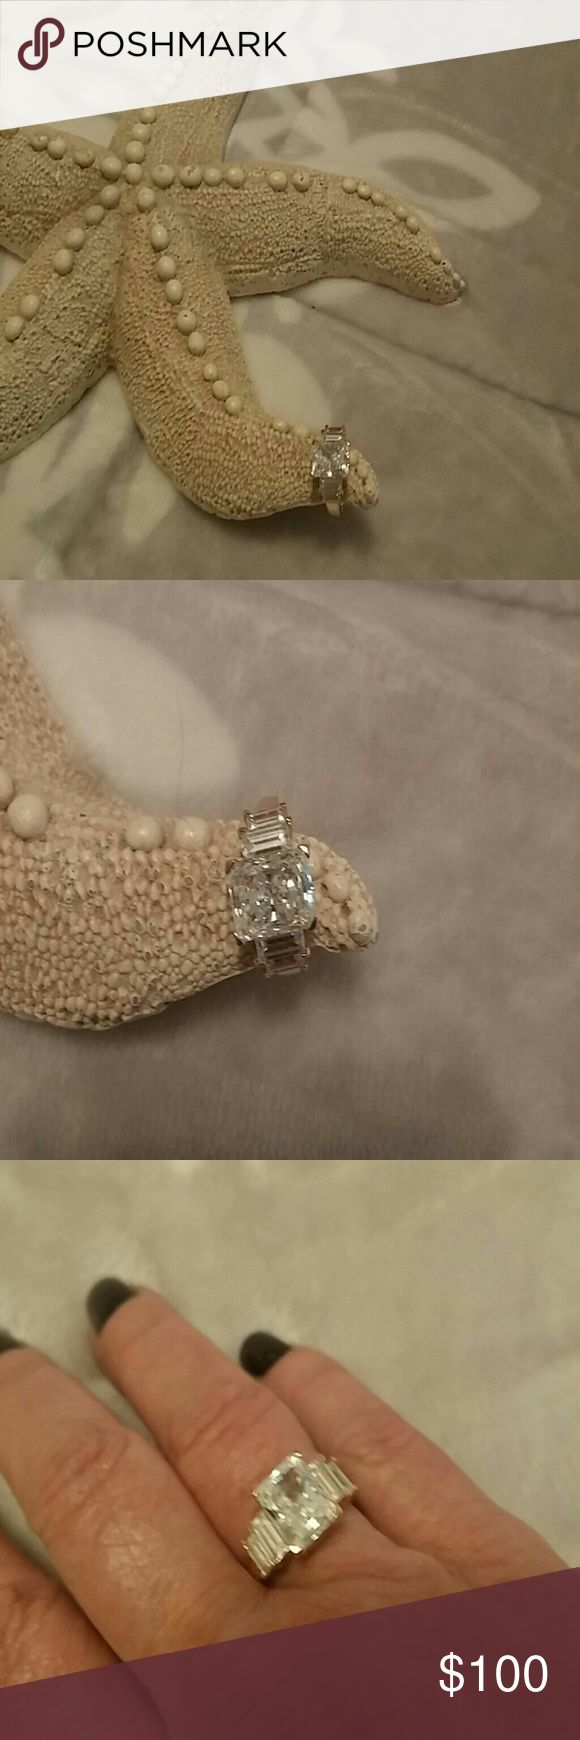 Beautiful CZ ring This is an authentic CZ ring that I ordered for a service anniversary gift. Its over 3 ct. & has just a beautiful shine to them. I have never worn it & was purchased for $300.  The size is either a 7 or 7.5 Im not sure which as it has been years in my jewelry box. No papers. Price is firm, if I dont sell it I will keep it. Jewelry Rings